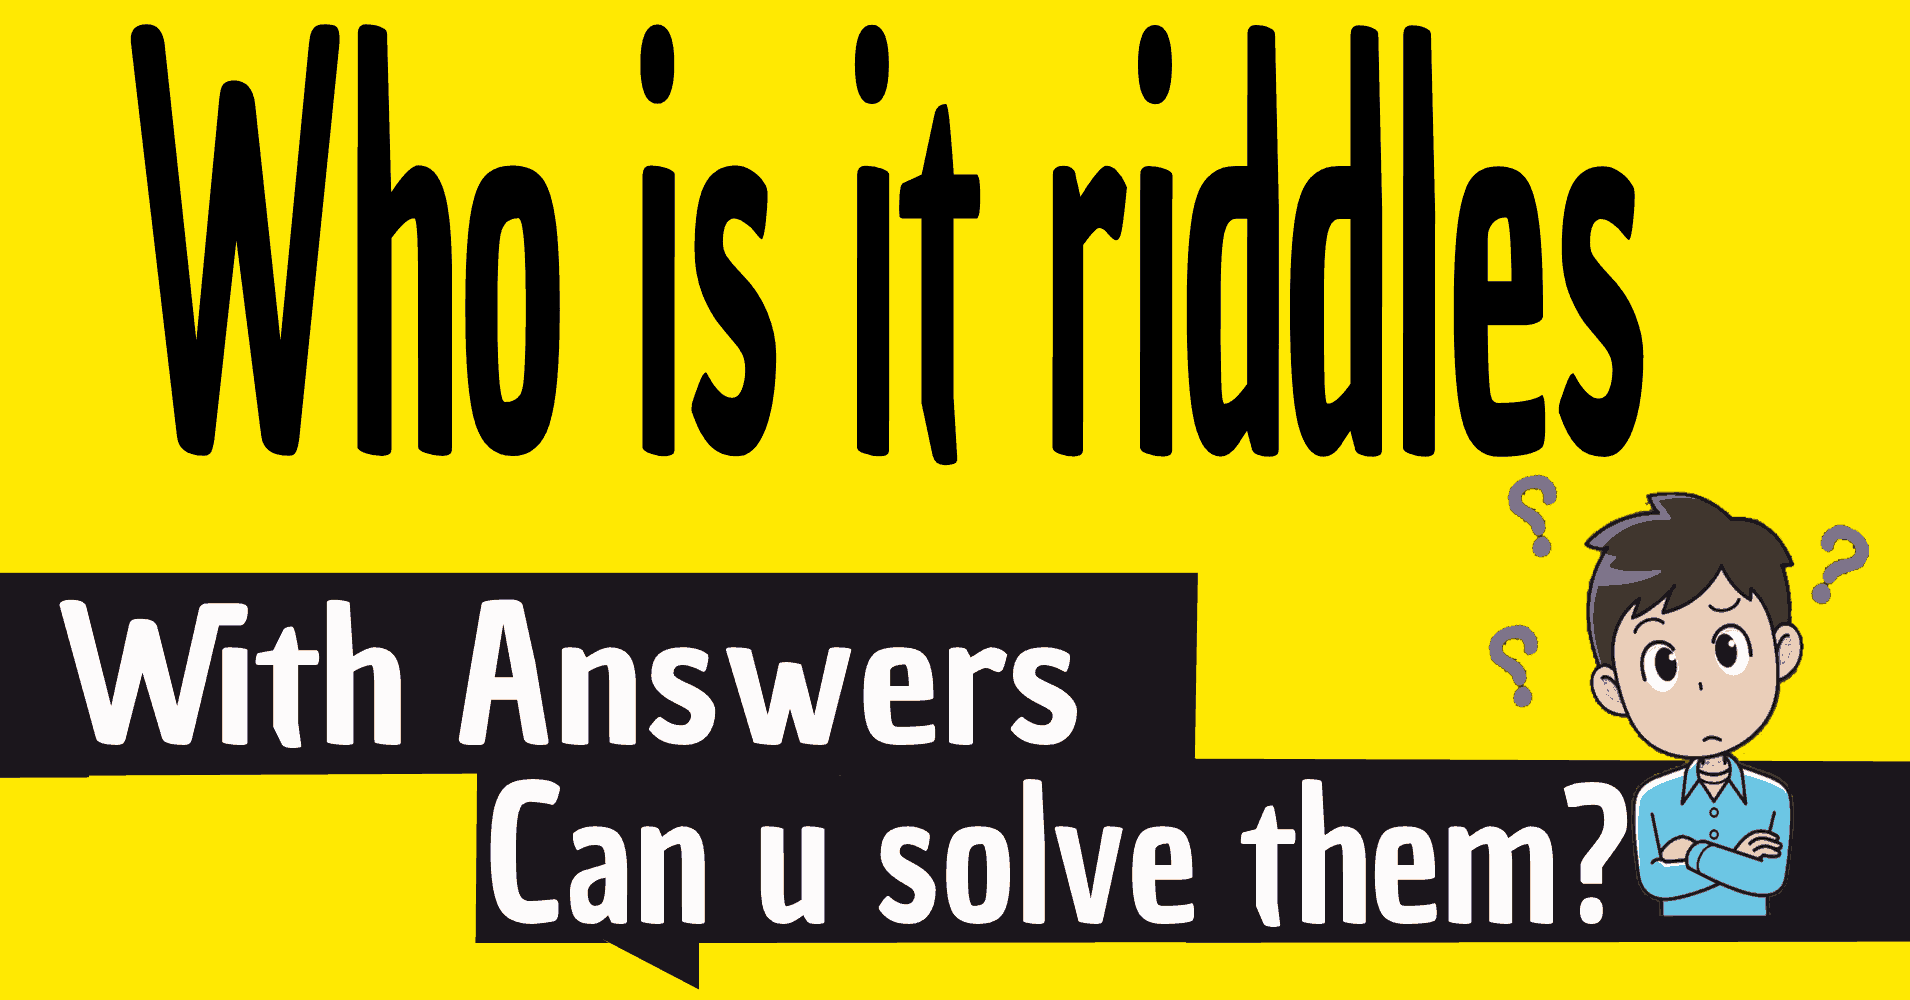 Who is it riddles with answers